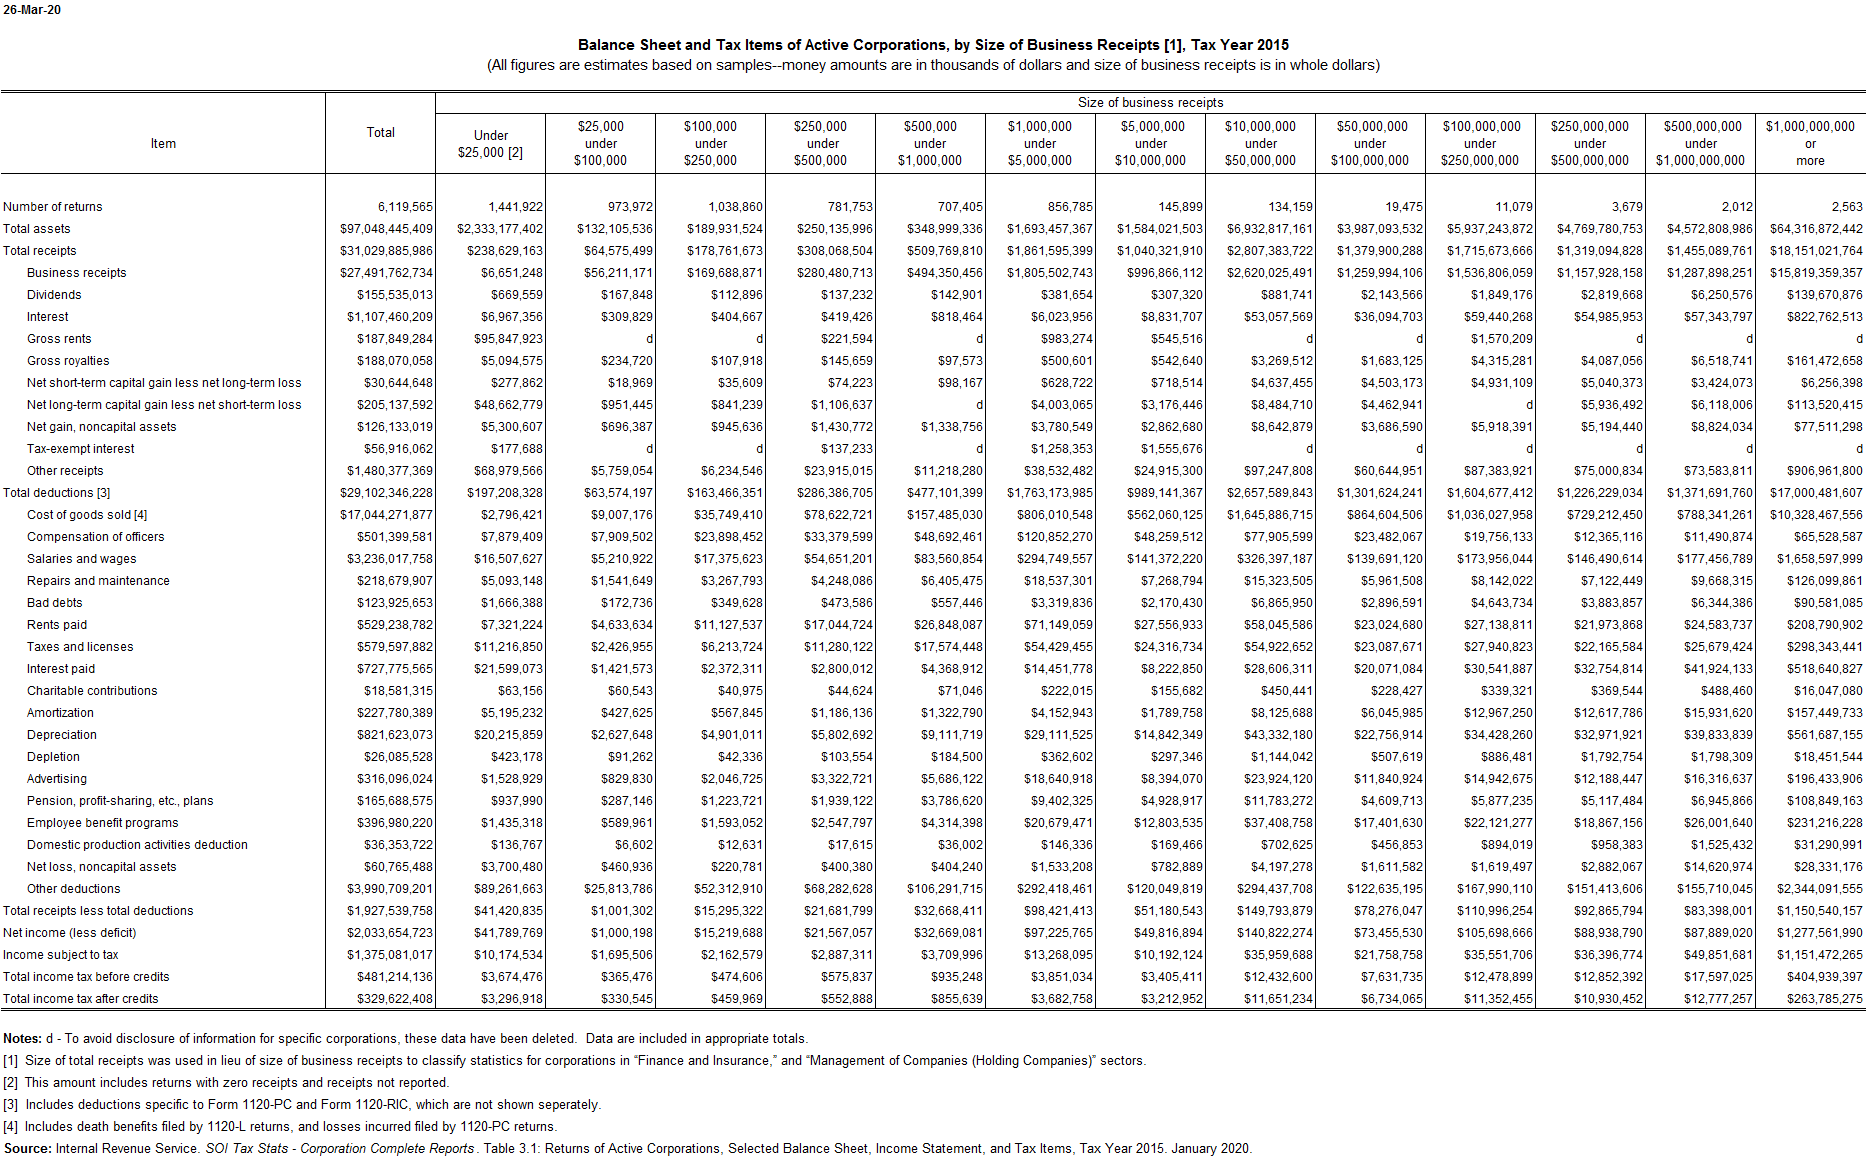 Corporate Tax Items by Size of Business Receipts